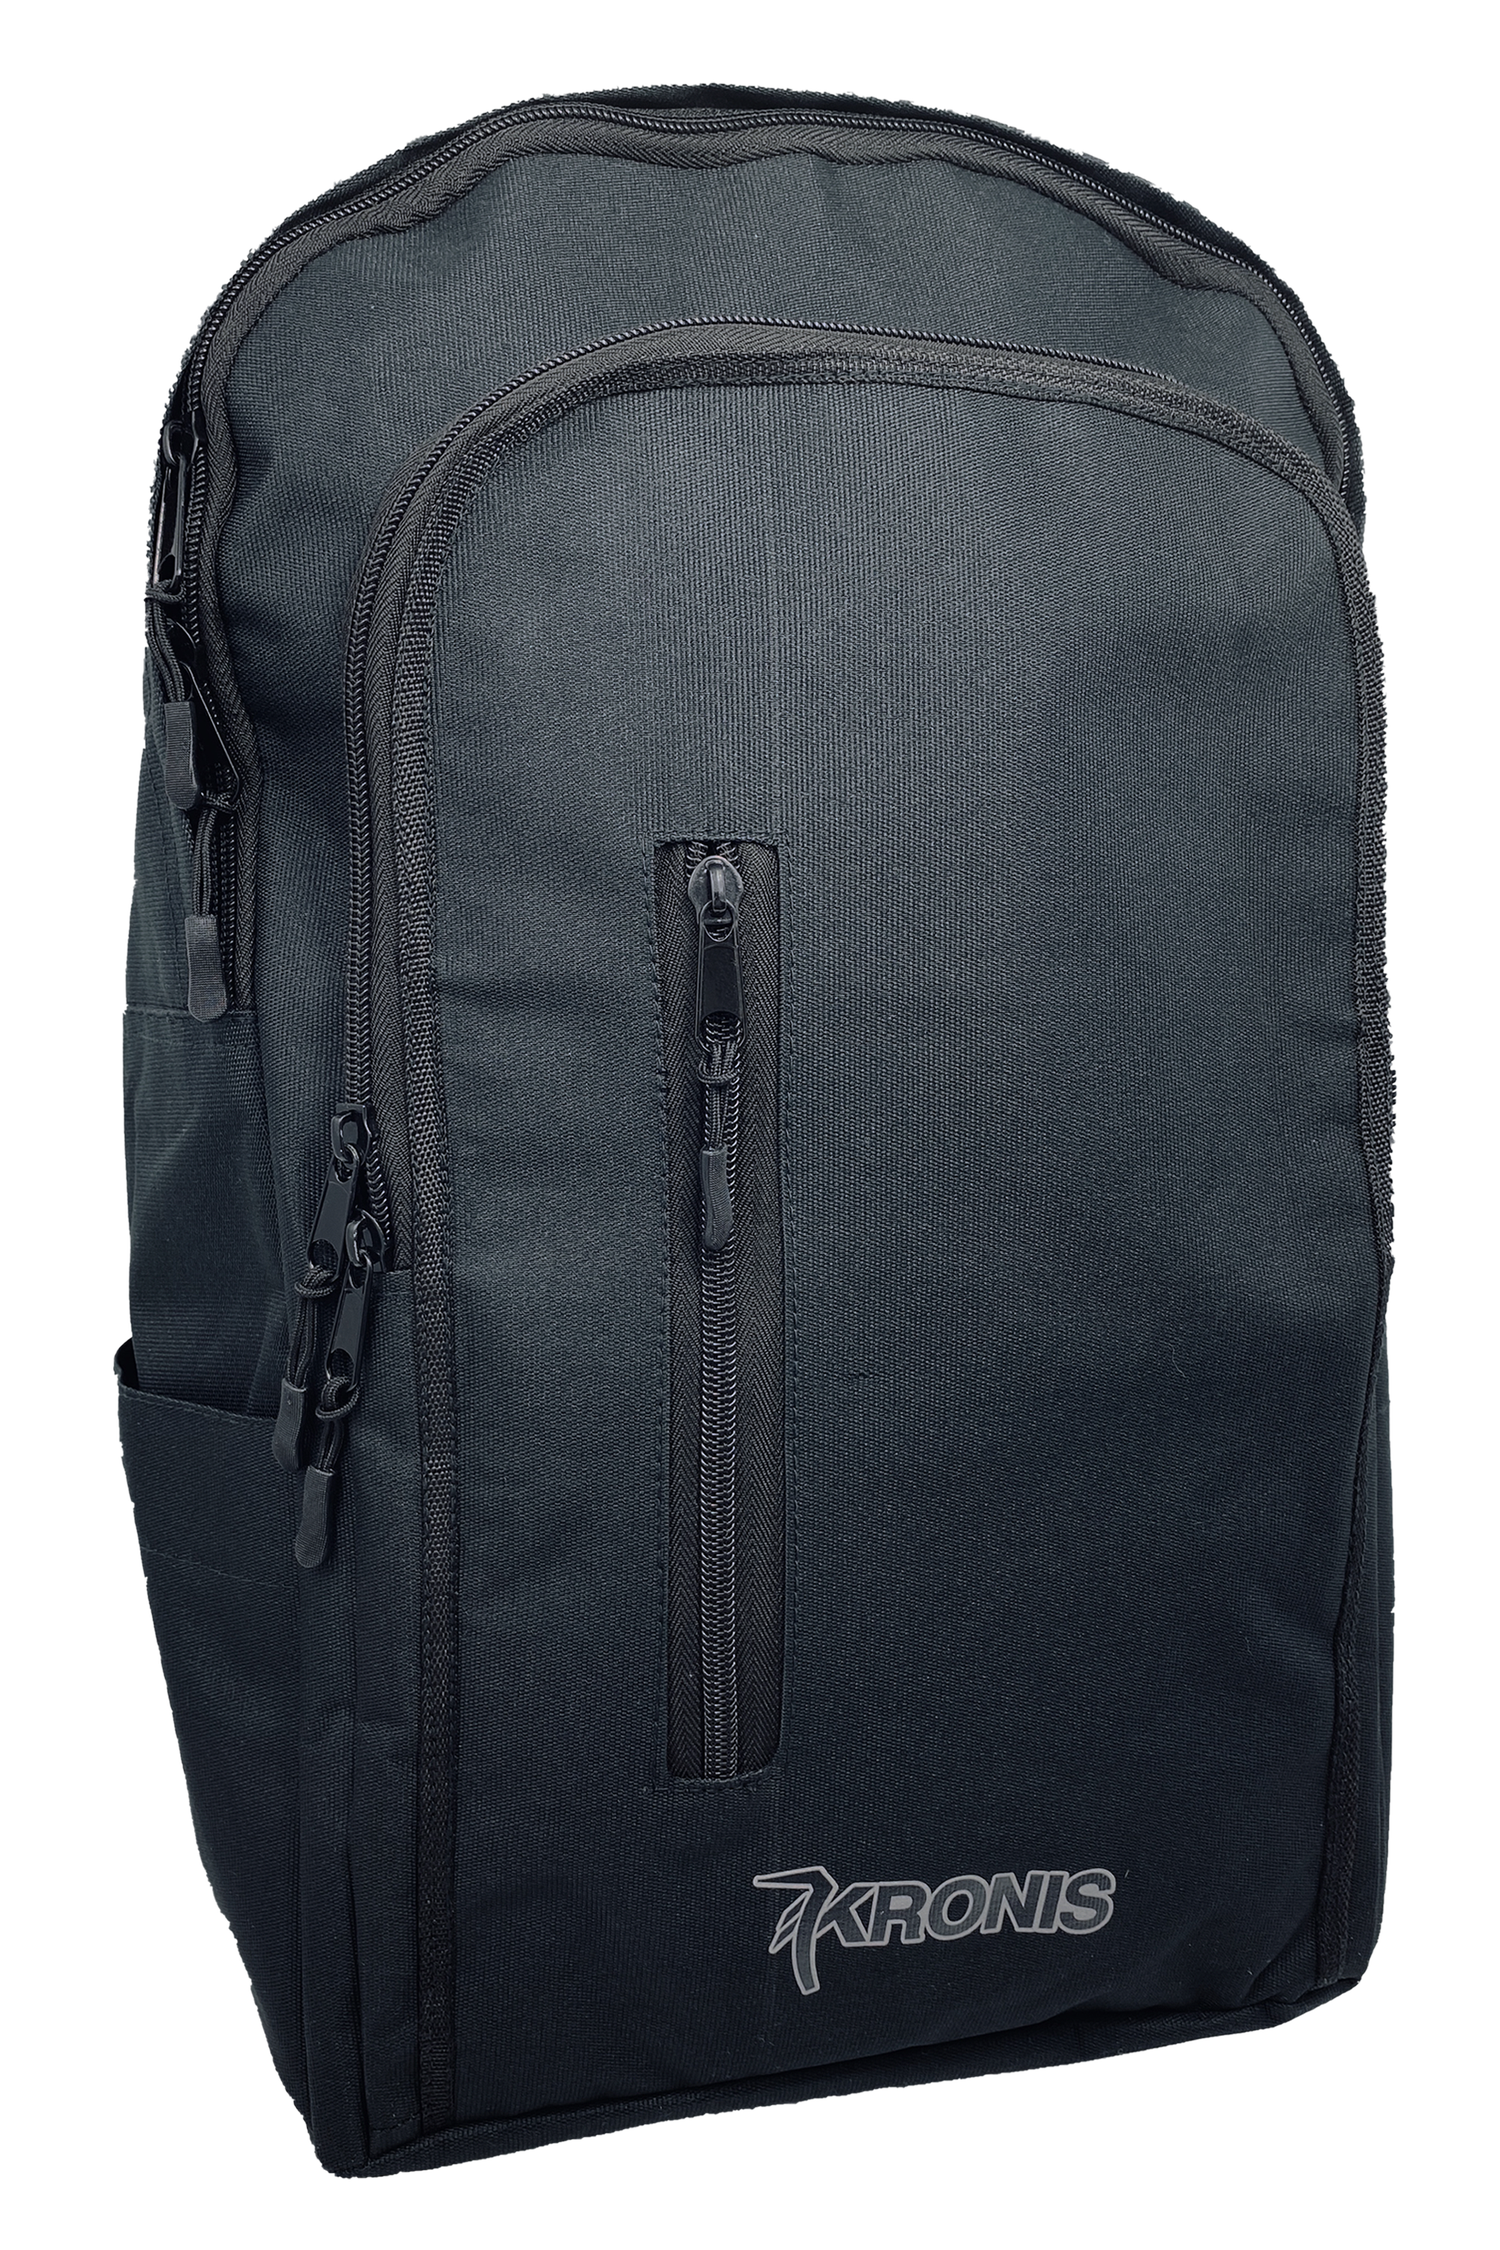 Image of KRONIS ELEMENT BACKPACK